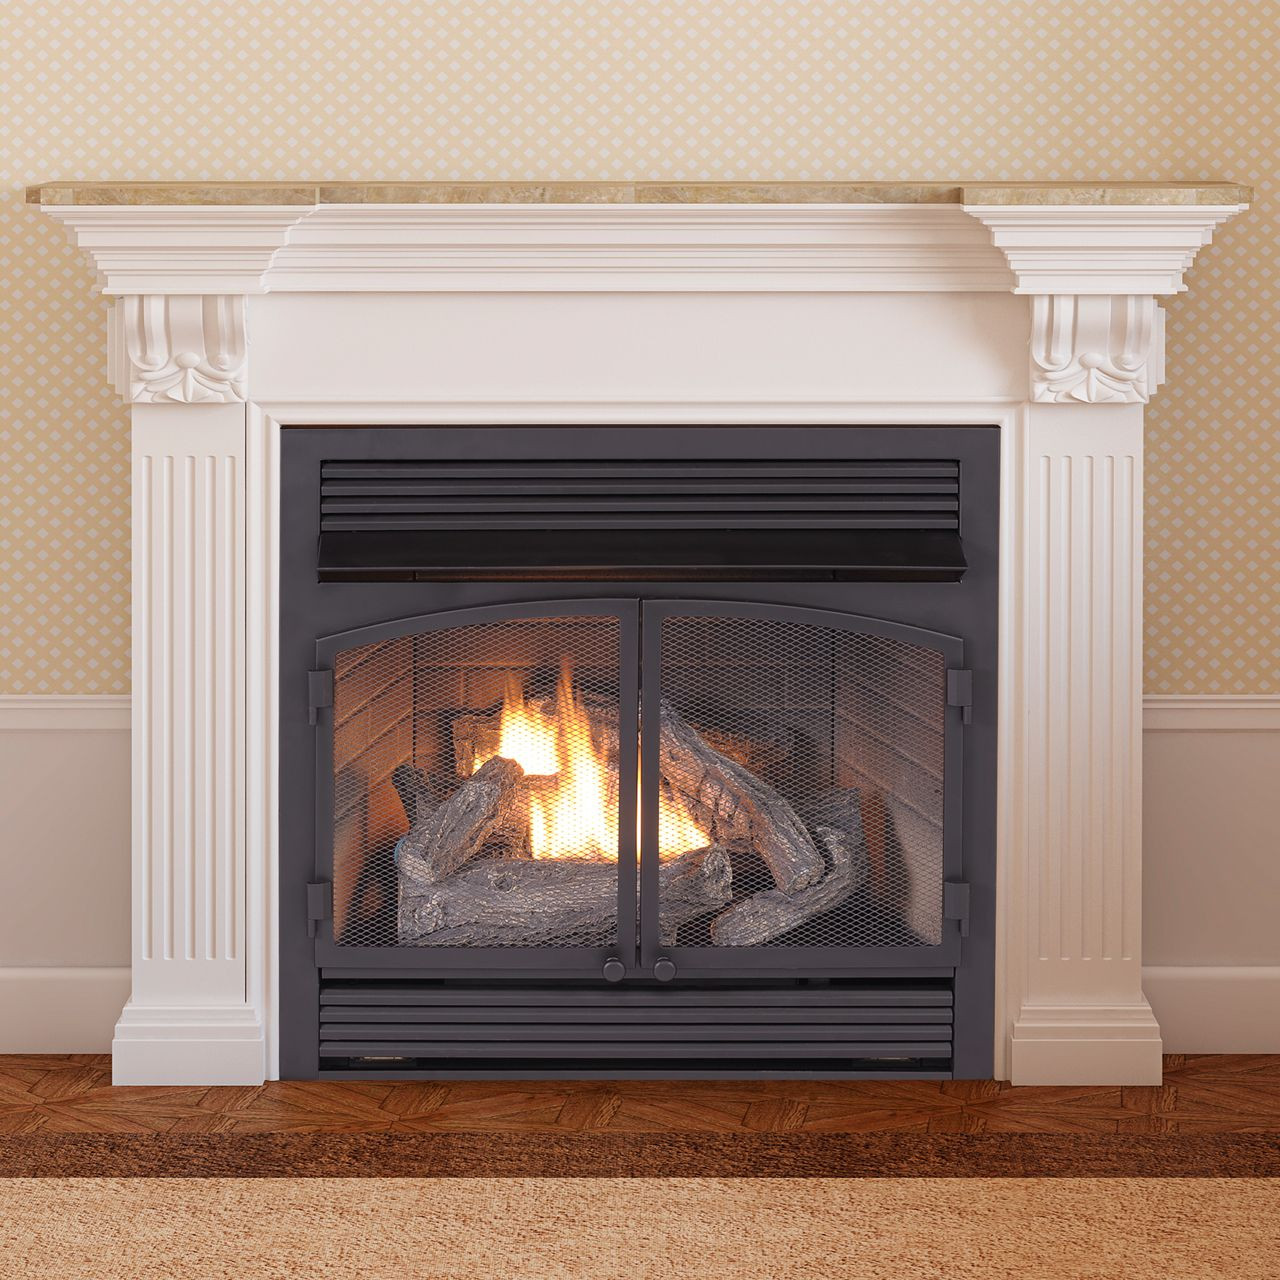 gas electric fireplaces factory buys direct rh factorybuysdirect com images of gas fireplace inserts images of gas fireplaces with tv above